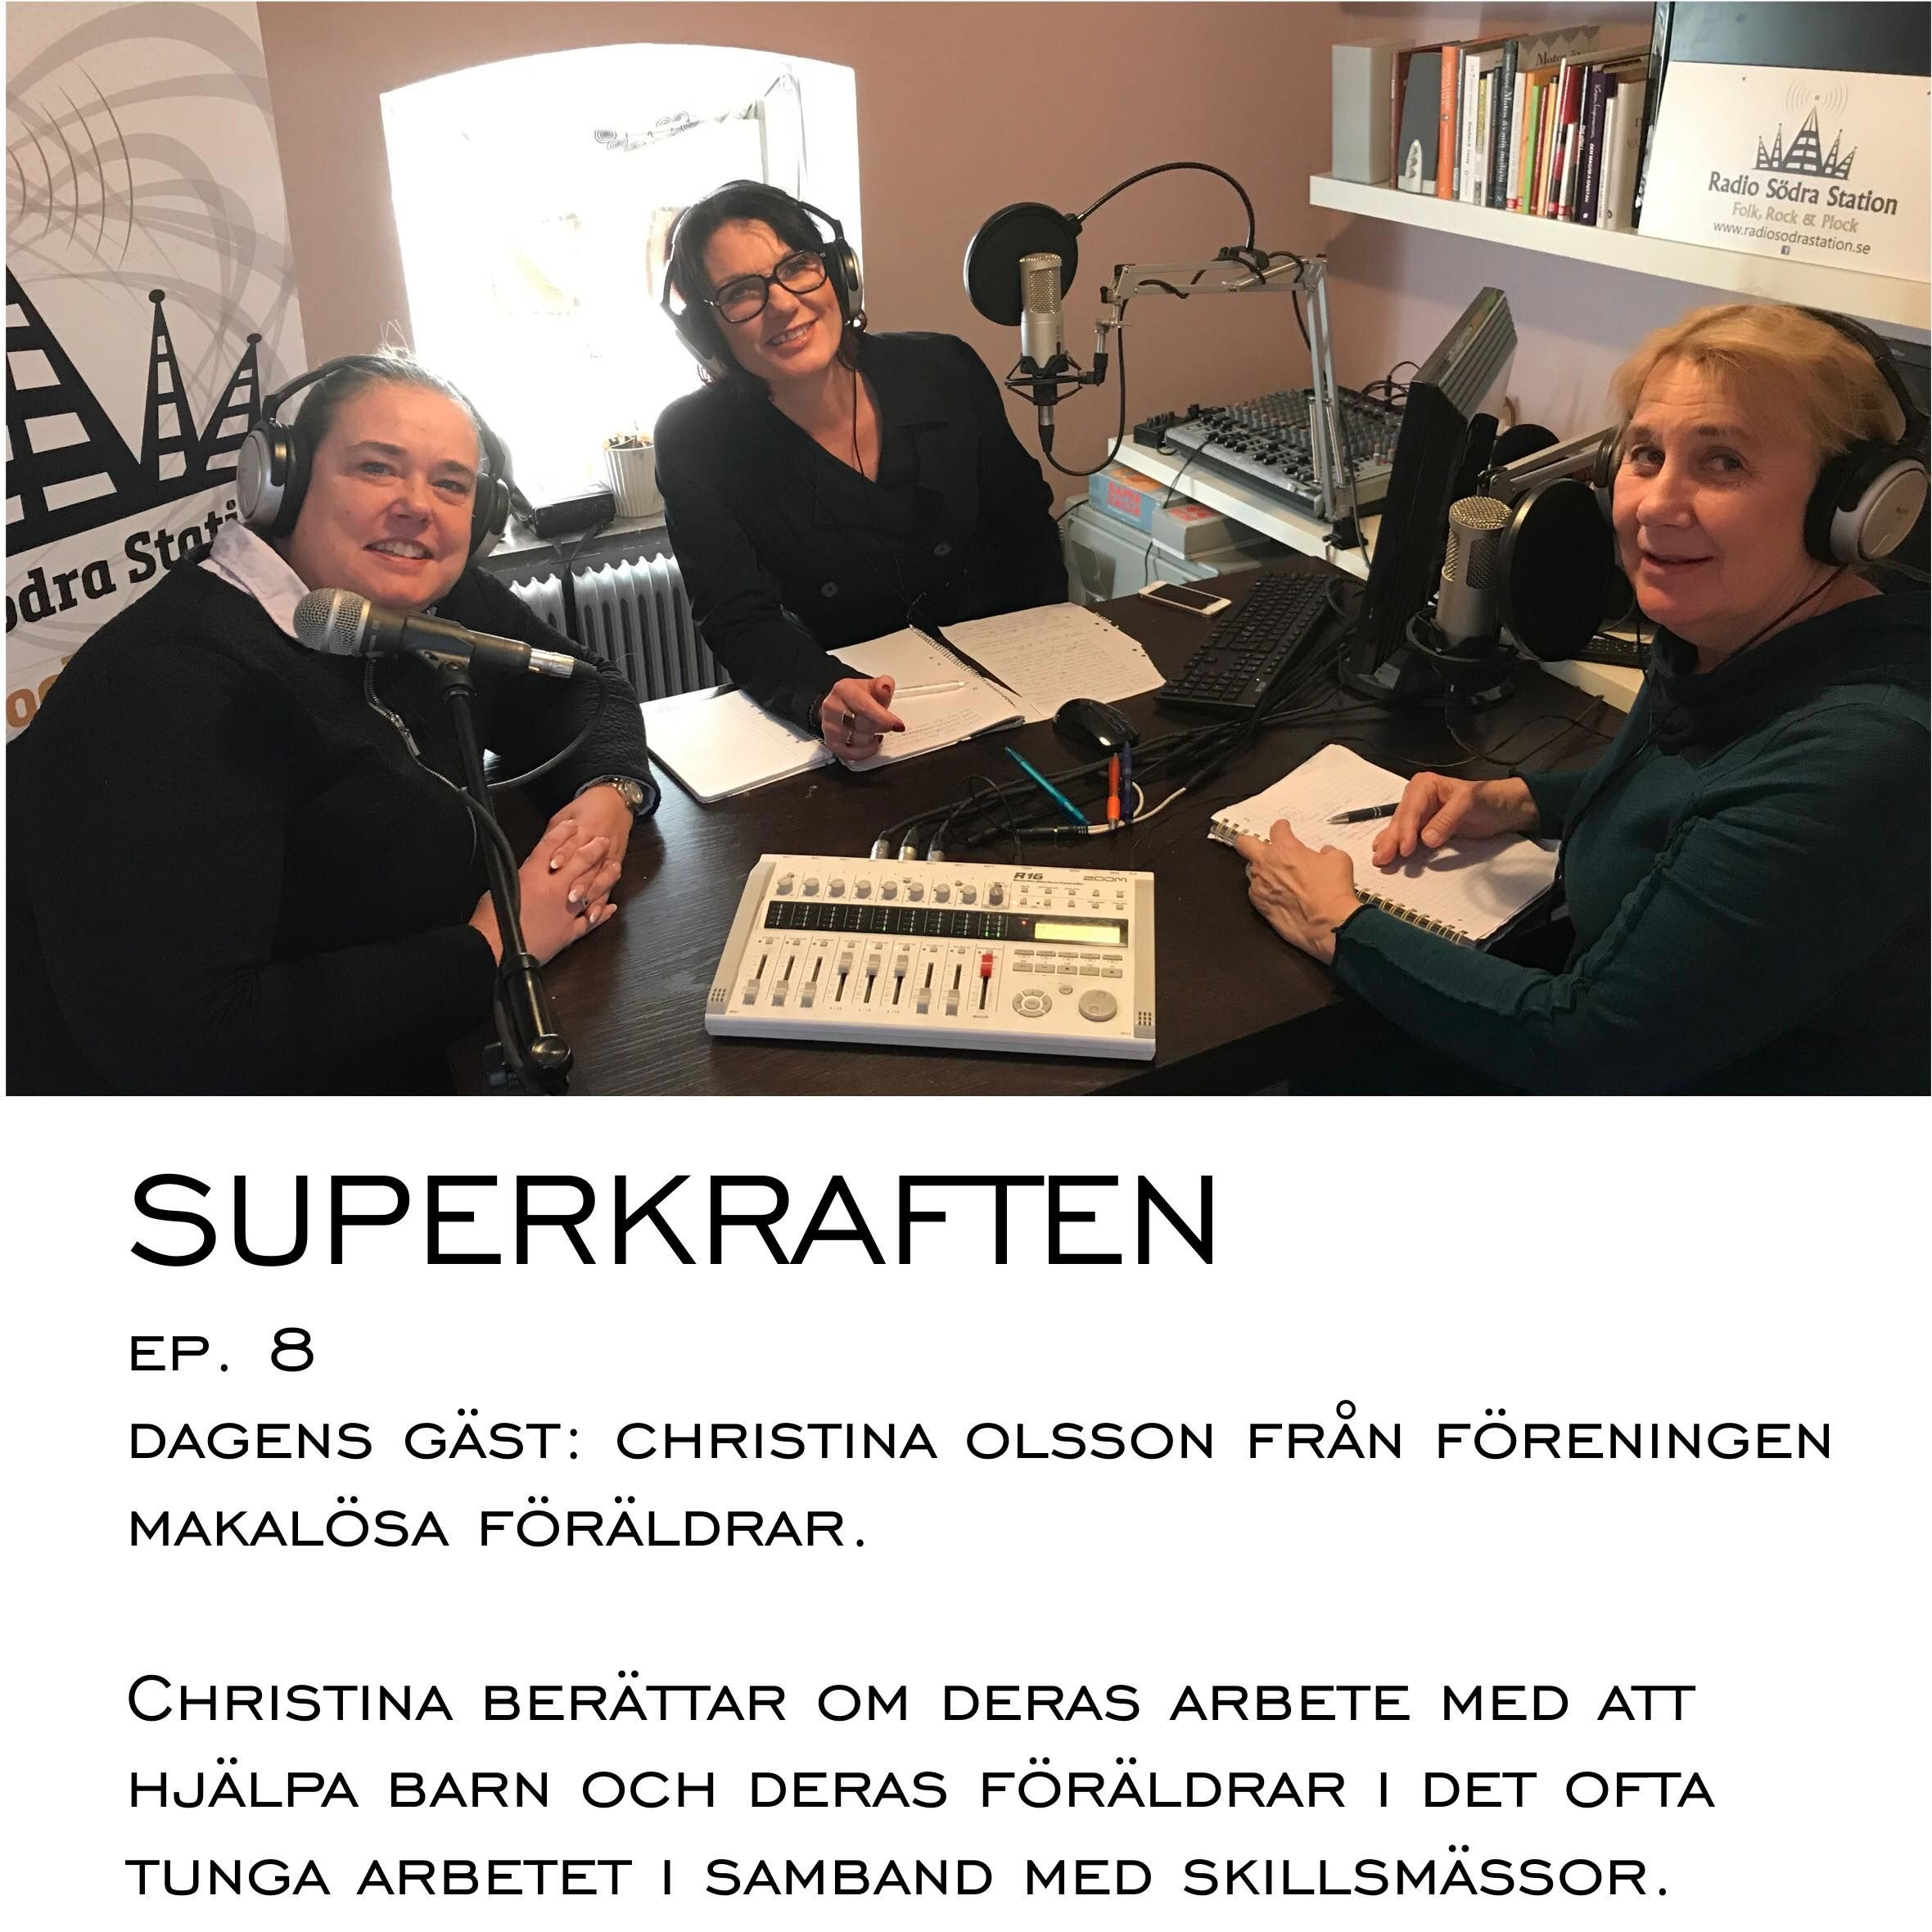 Superkraften